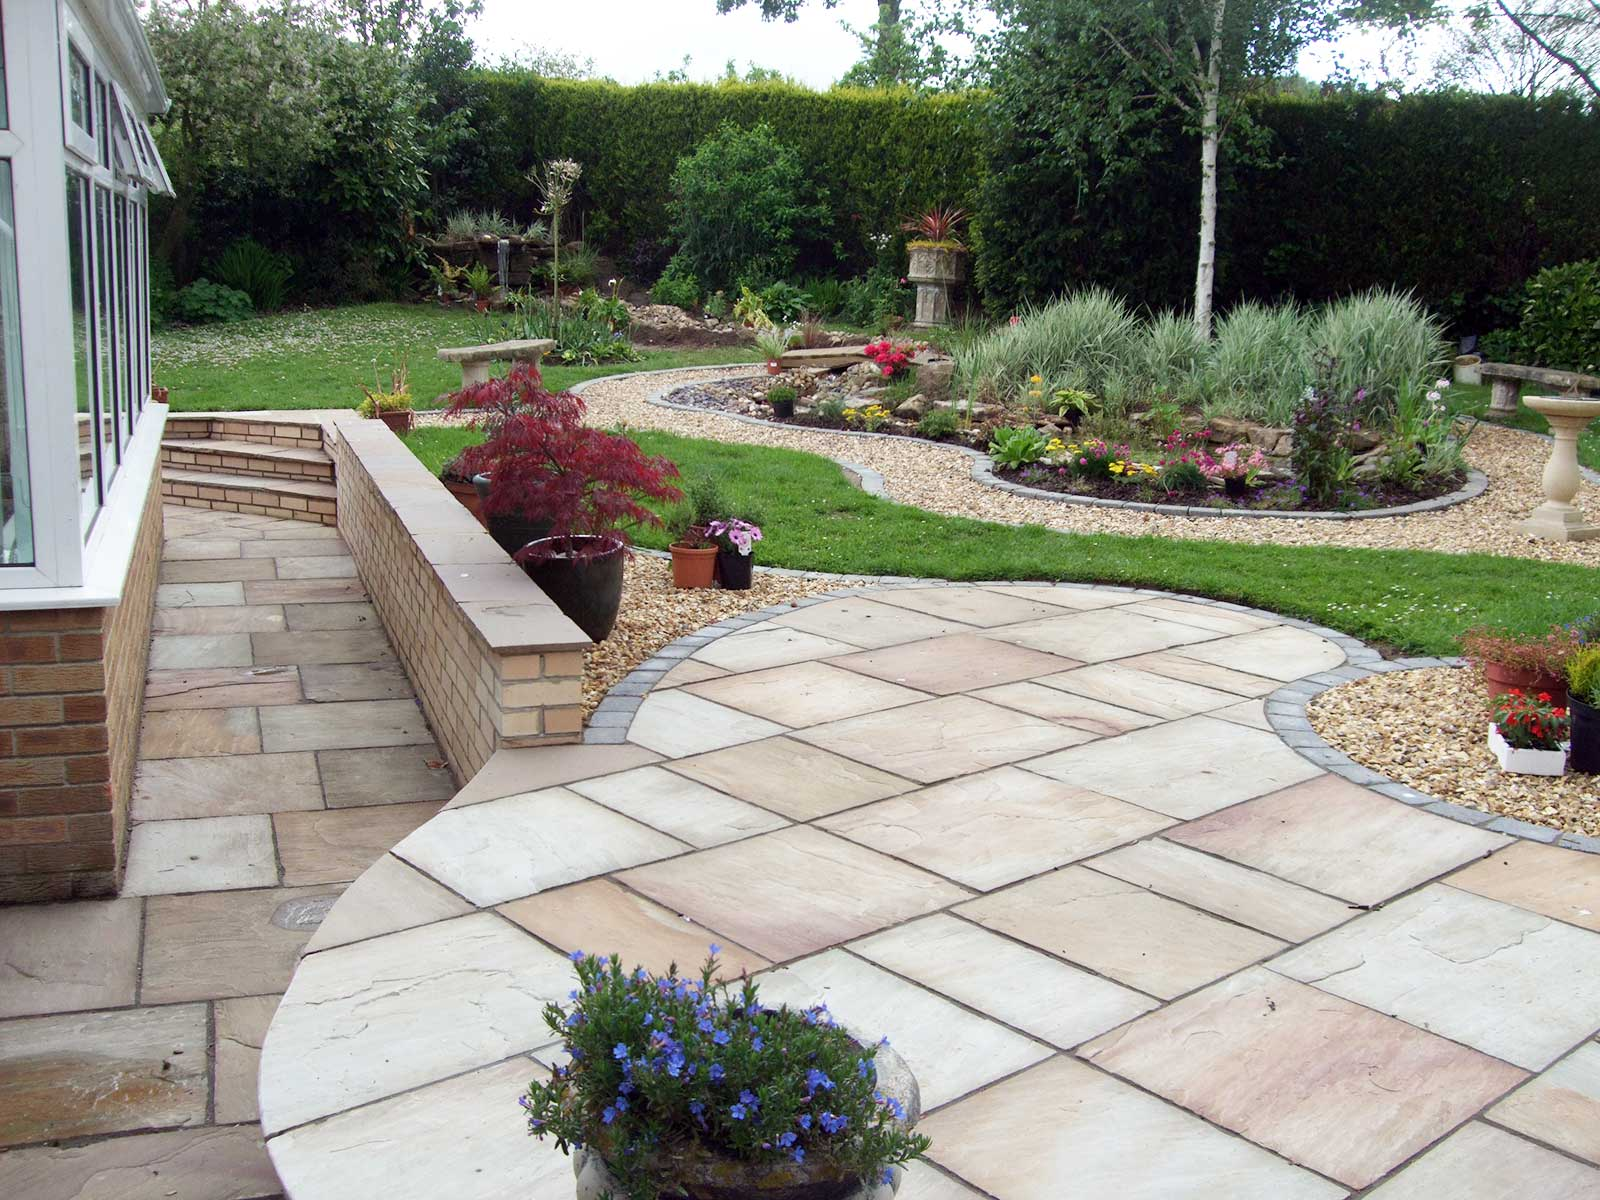 CREATIVE PATIO AND LANDSCAPE DESIGN. Patios